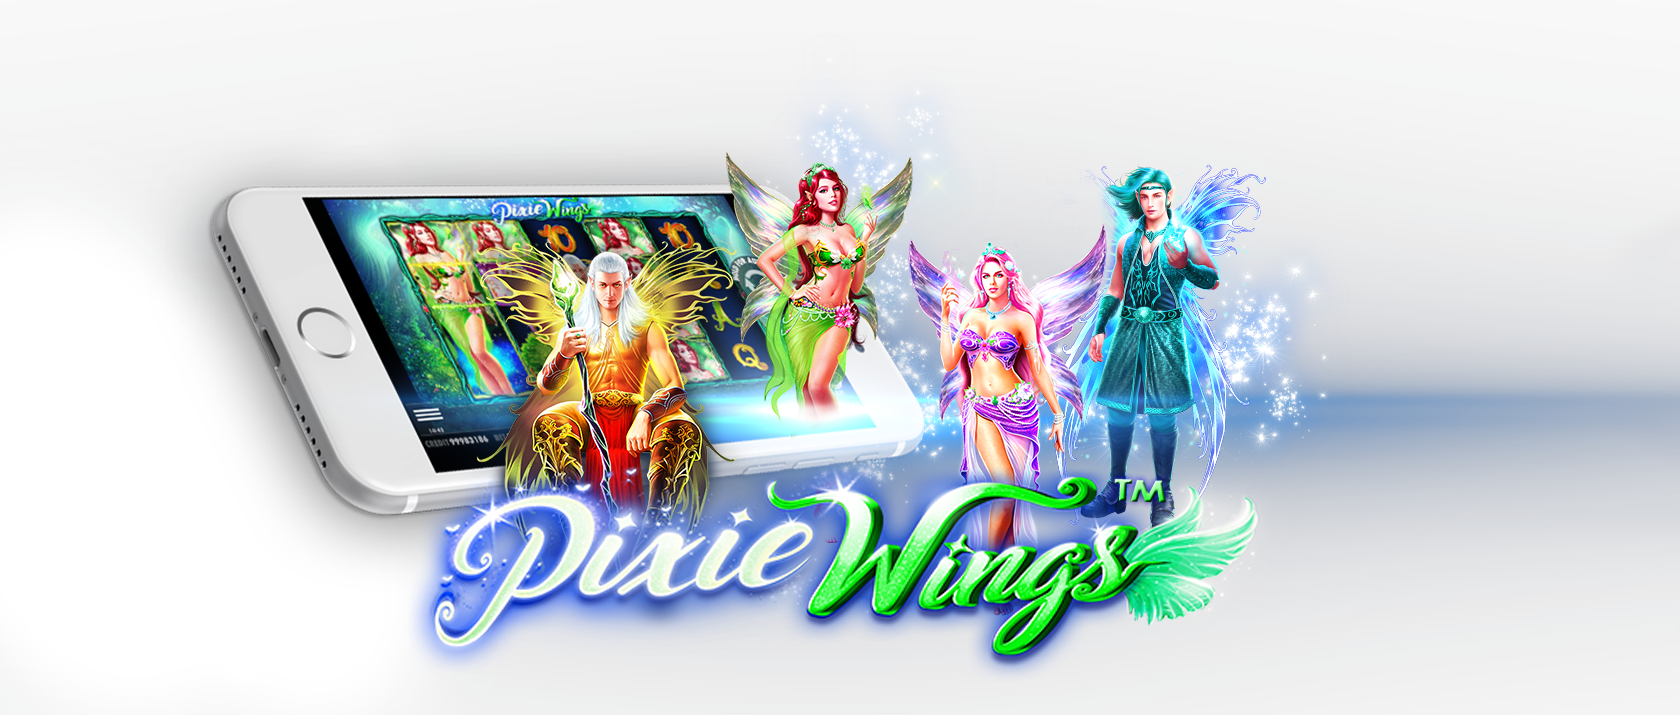 Play Pixie Wings Online Slots - Win 500 Spins - Wizard Slots